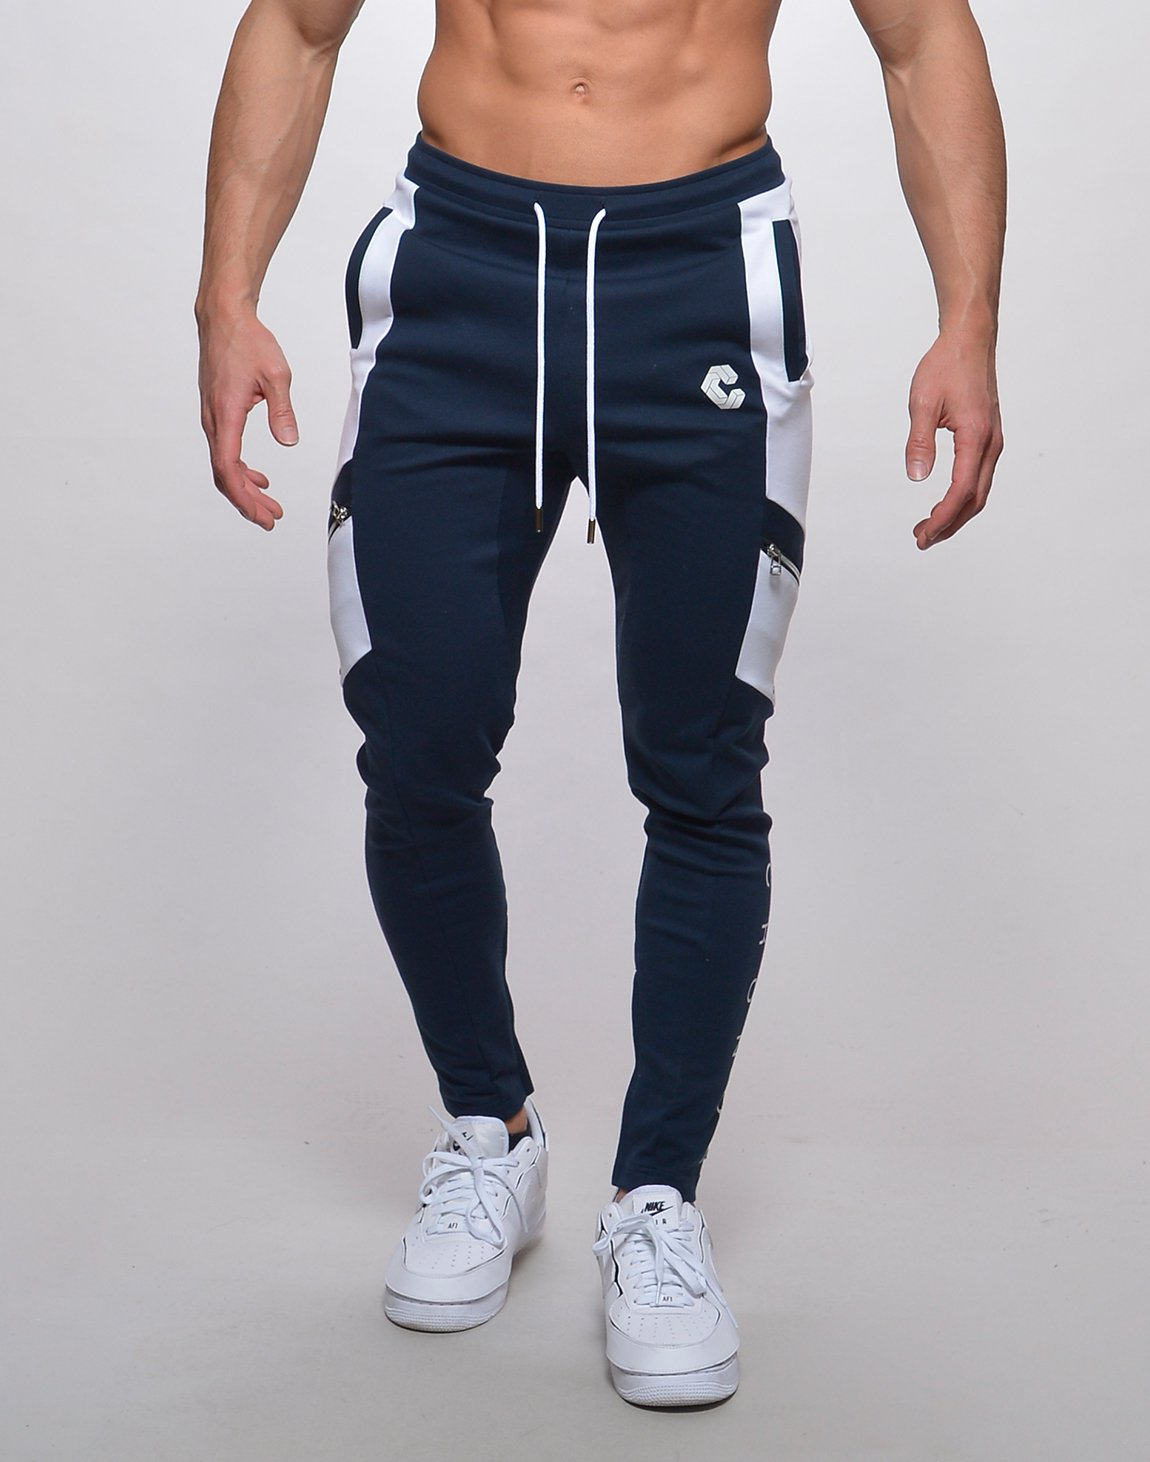 <img class='new_mark_img1' src='https://img.shop-pro.jp/img/new/icons1.gif' style='border:none;display:inline;margin:0px;padding:0px;width:auto;' />CRONOS SLANTED LINE ZIP PANTS【NAVY】